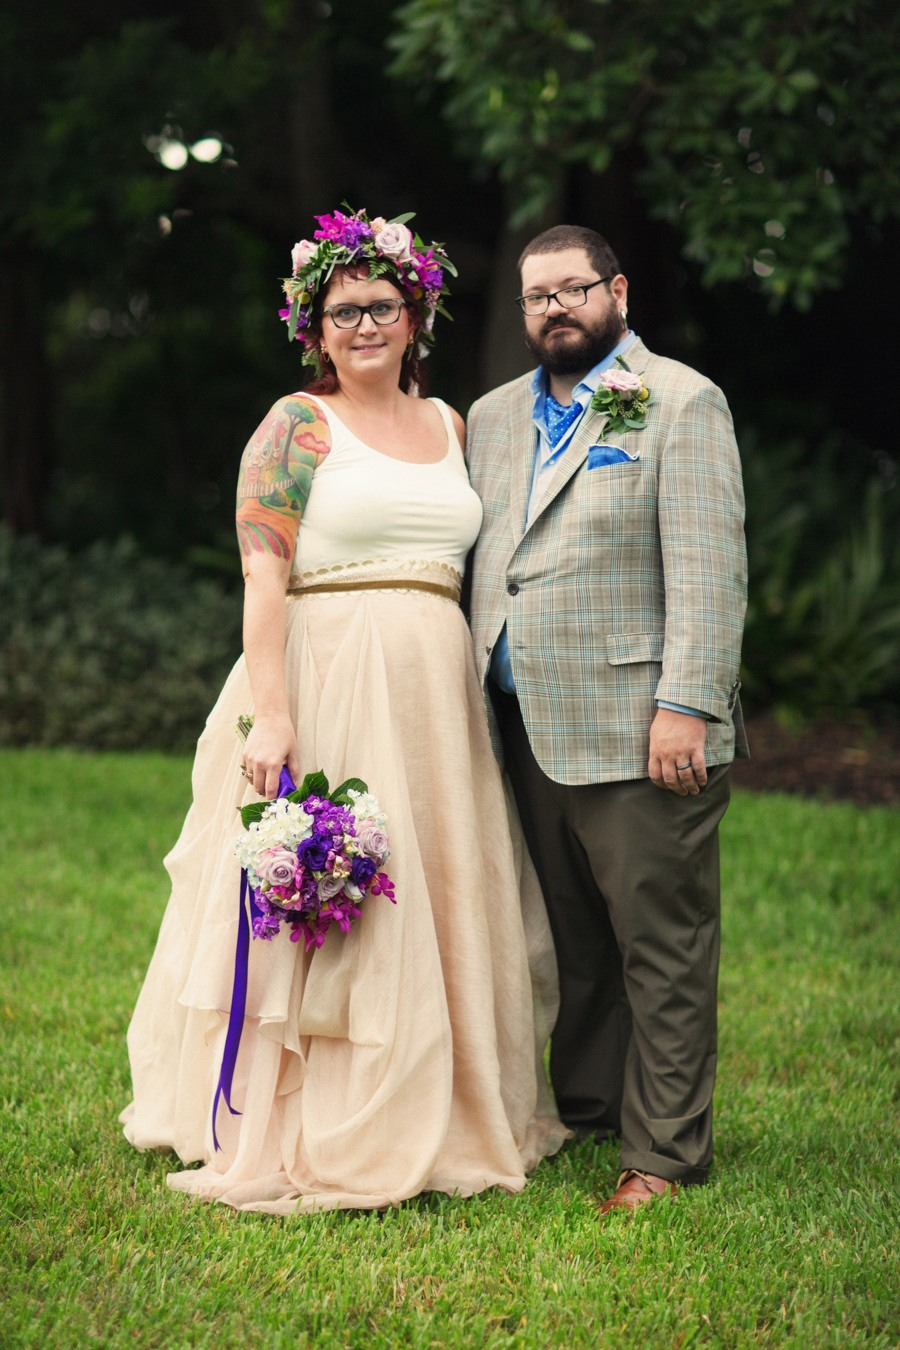 sarasota-wedding-29-06172015-ky